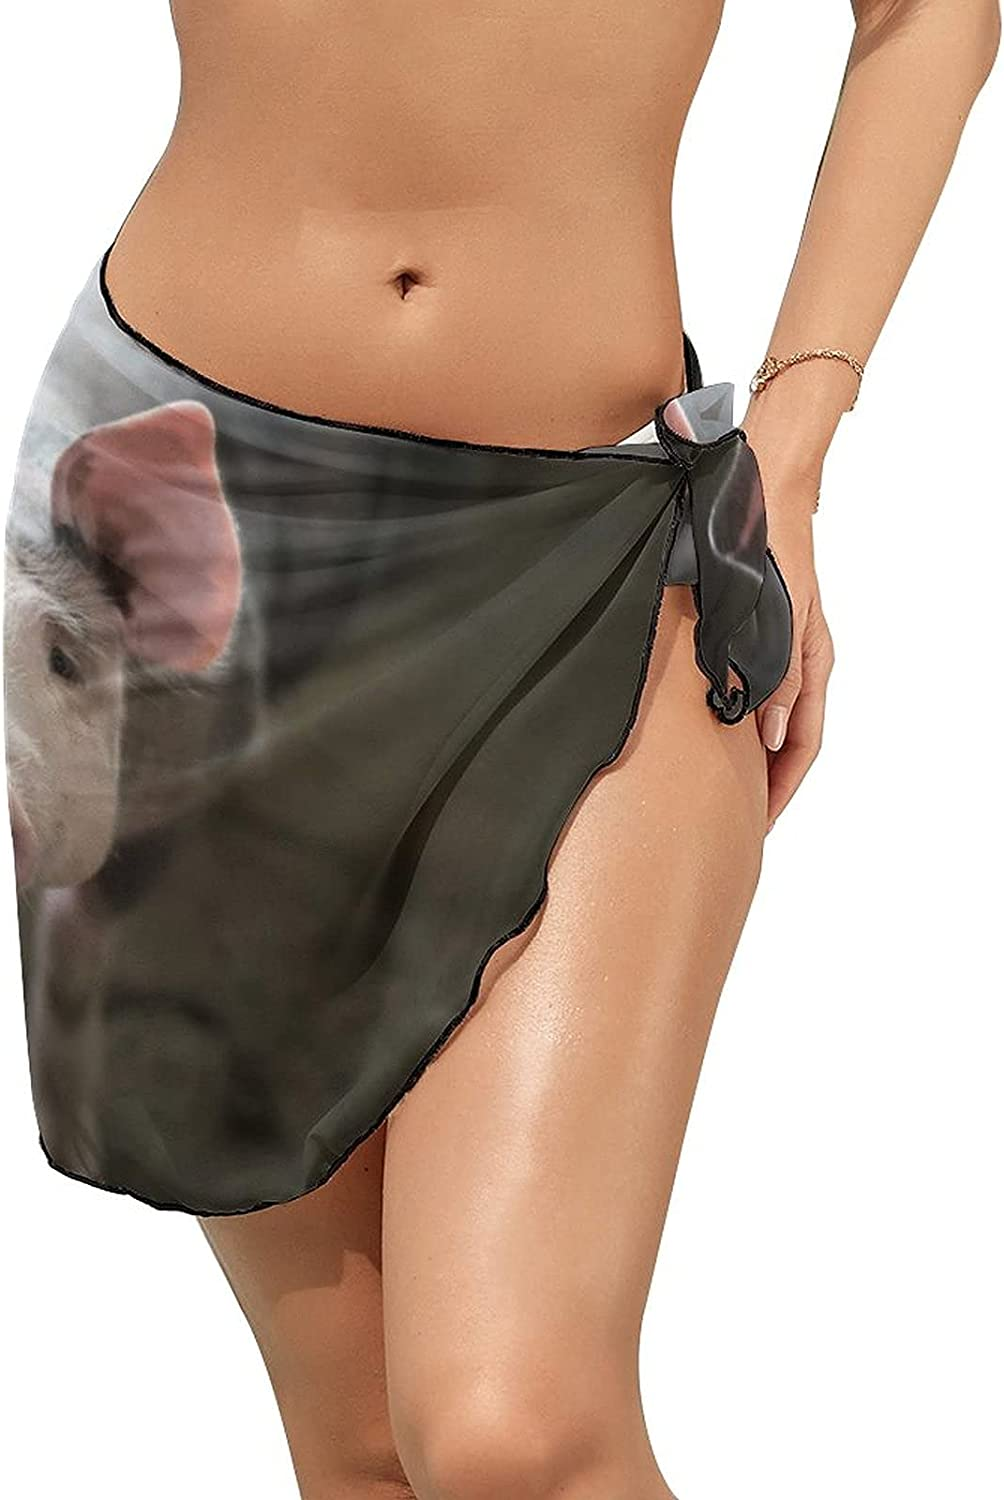 Swimsuit Cover Ups Butterfly Insect Pattern Customed Beach Sarong Bikini Short Skirt Wrap for Women